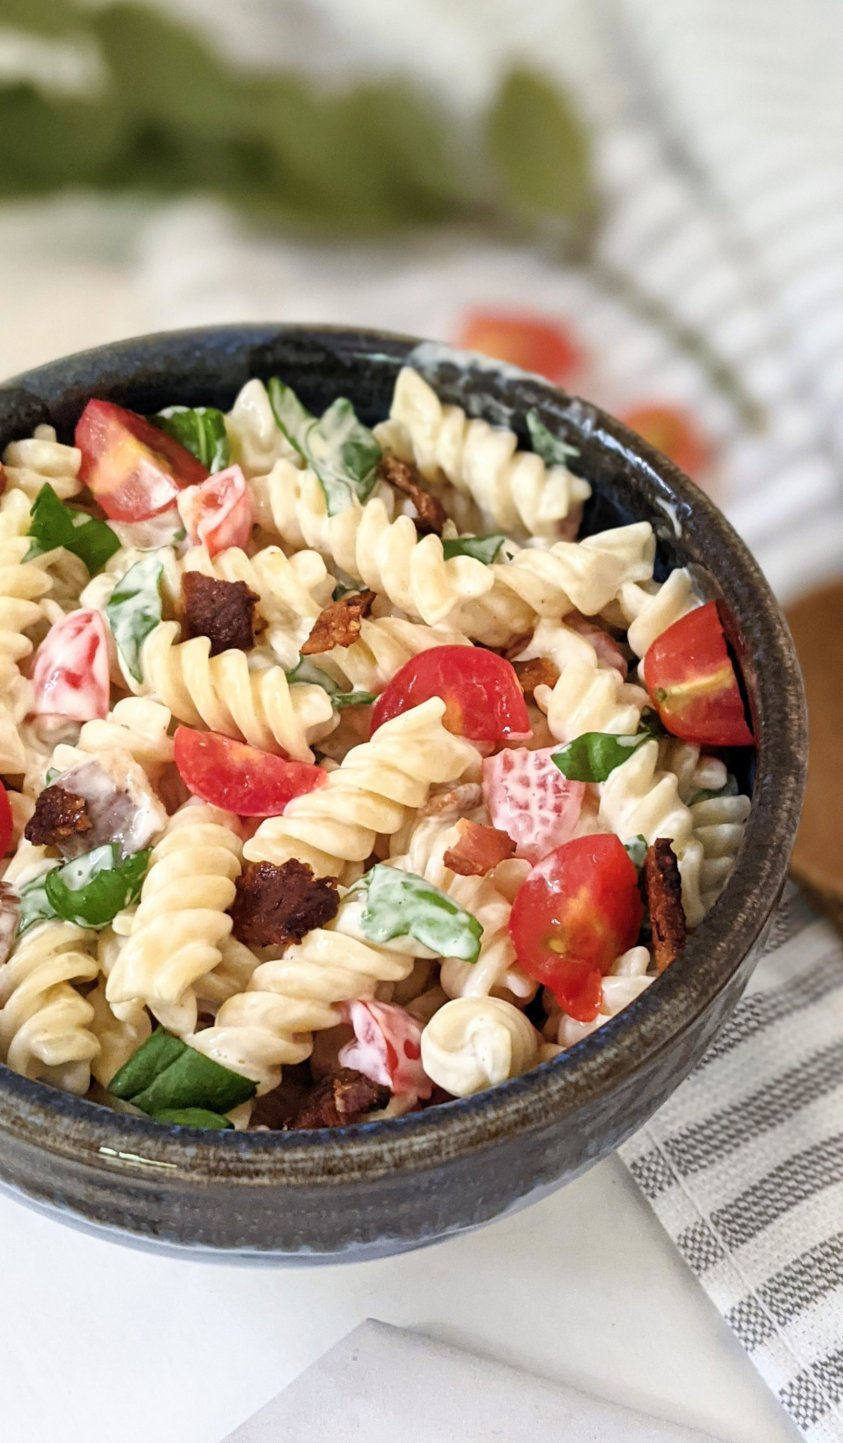 blt ranch pasta salad recipe for summer bbq side dish creamy salads fun party favorite recipes for memorial day bbq recipes side dishes for 4th of july cookouts and summer entertaining recipes